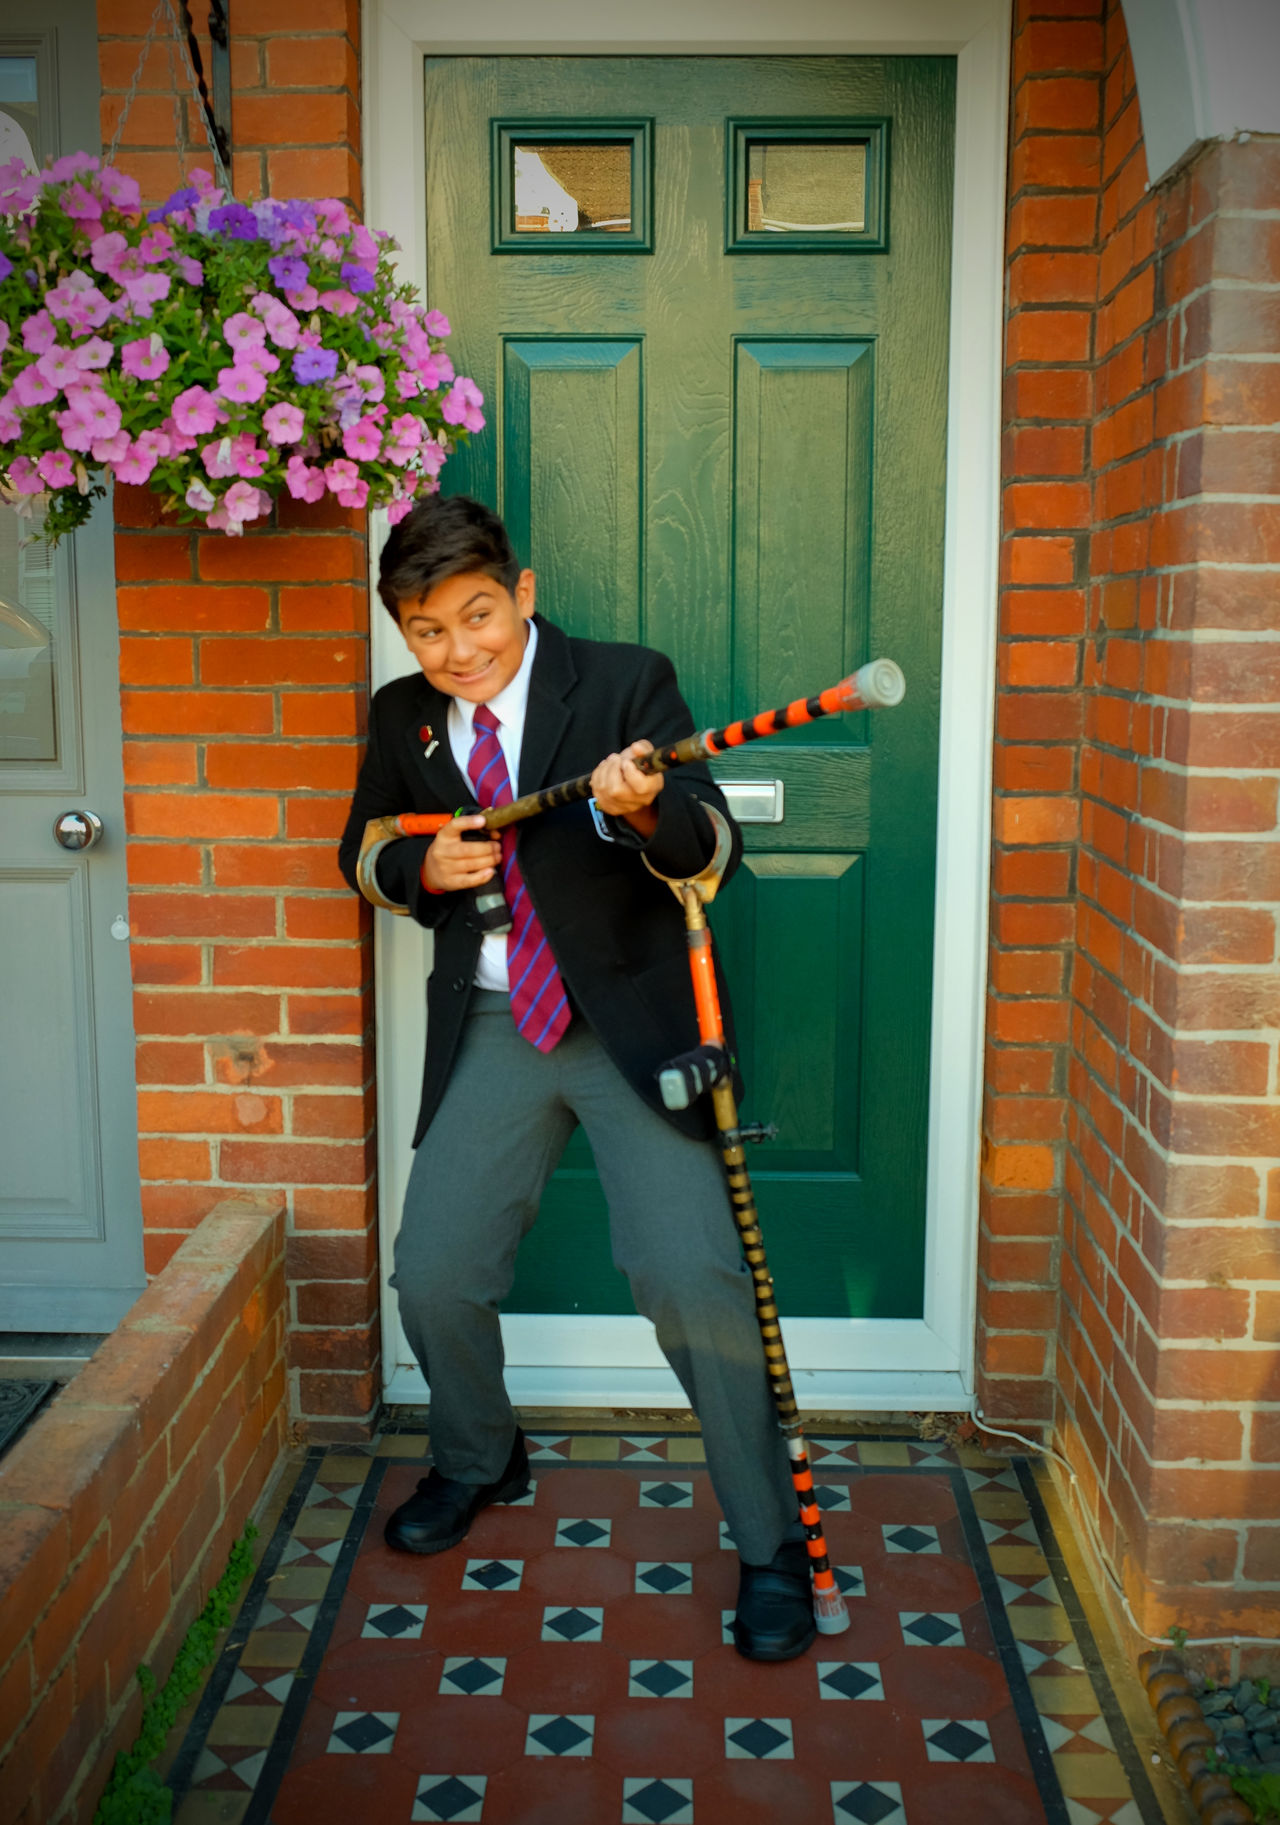 12 year old school boy in school uniform joking around with crutches in front of his house on his first day back at school 12 Year Old Boy 12 Years Ago Adult Brighton Uk Child Crutches Day Eyeem New Talent First Day Of School Flower Full Length Indoors  Joking Around Joking Around At School Lifestyles One Man Only One Person People Real People School Uniform School Uniforms Around The World Smiling Standing Suit Teanager